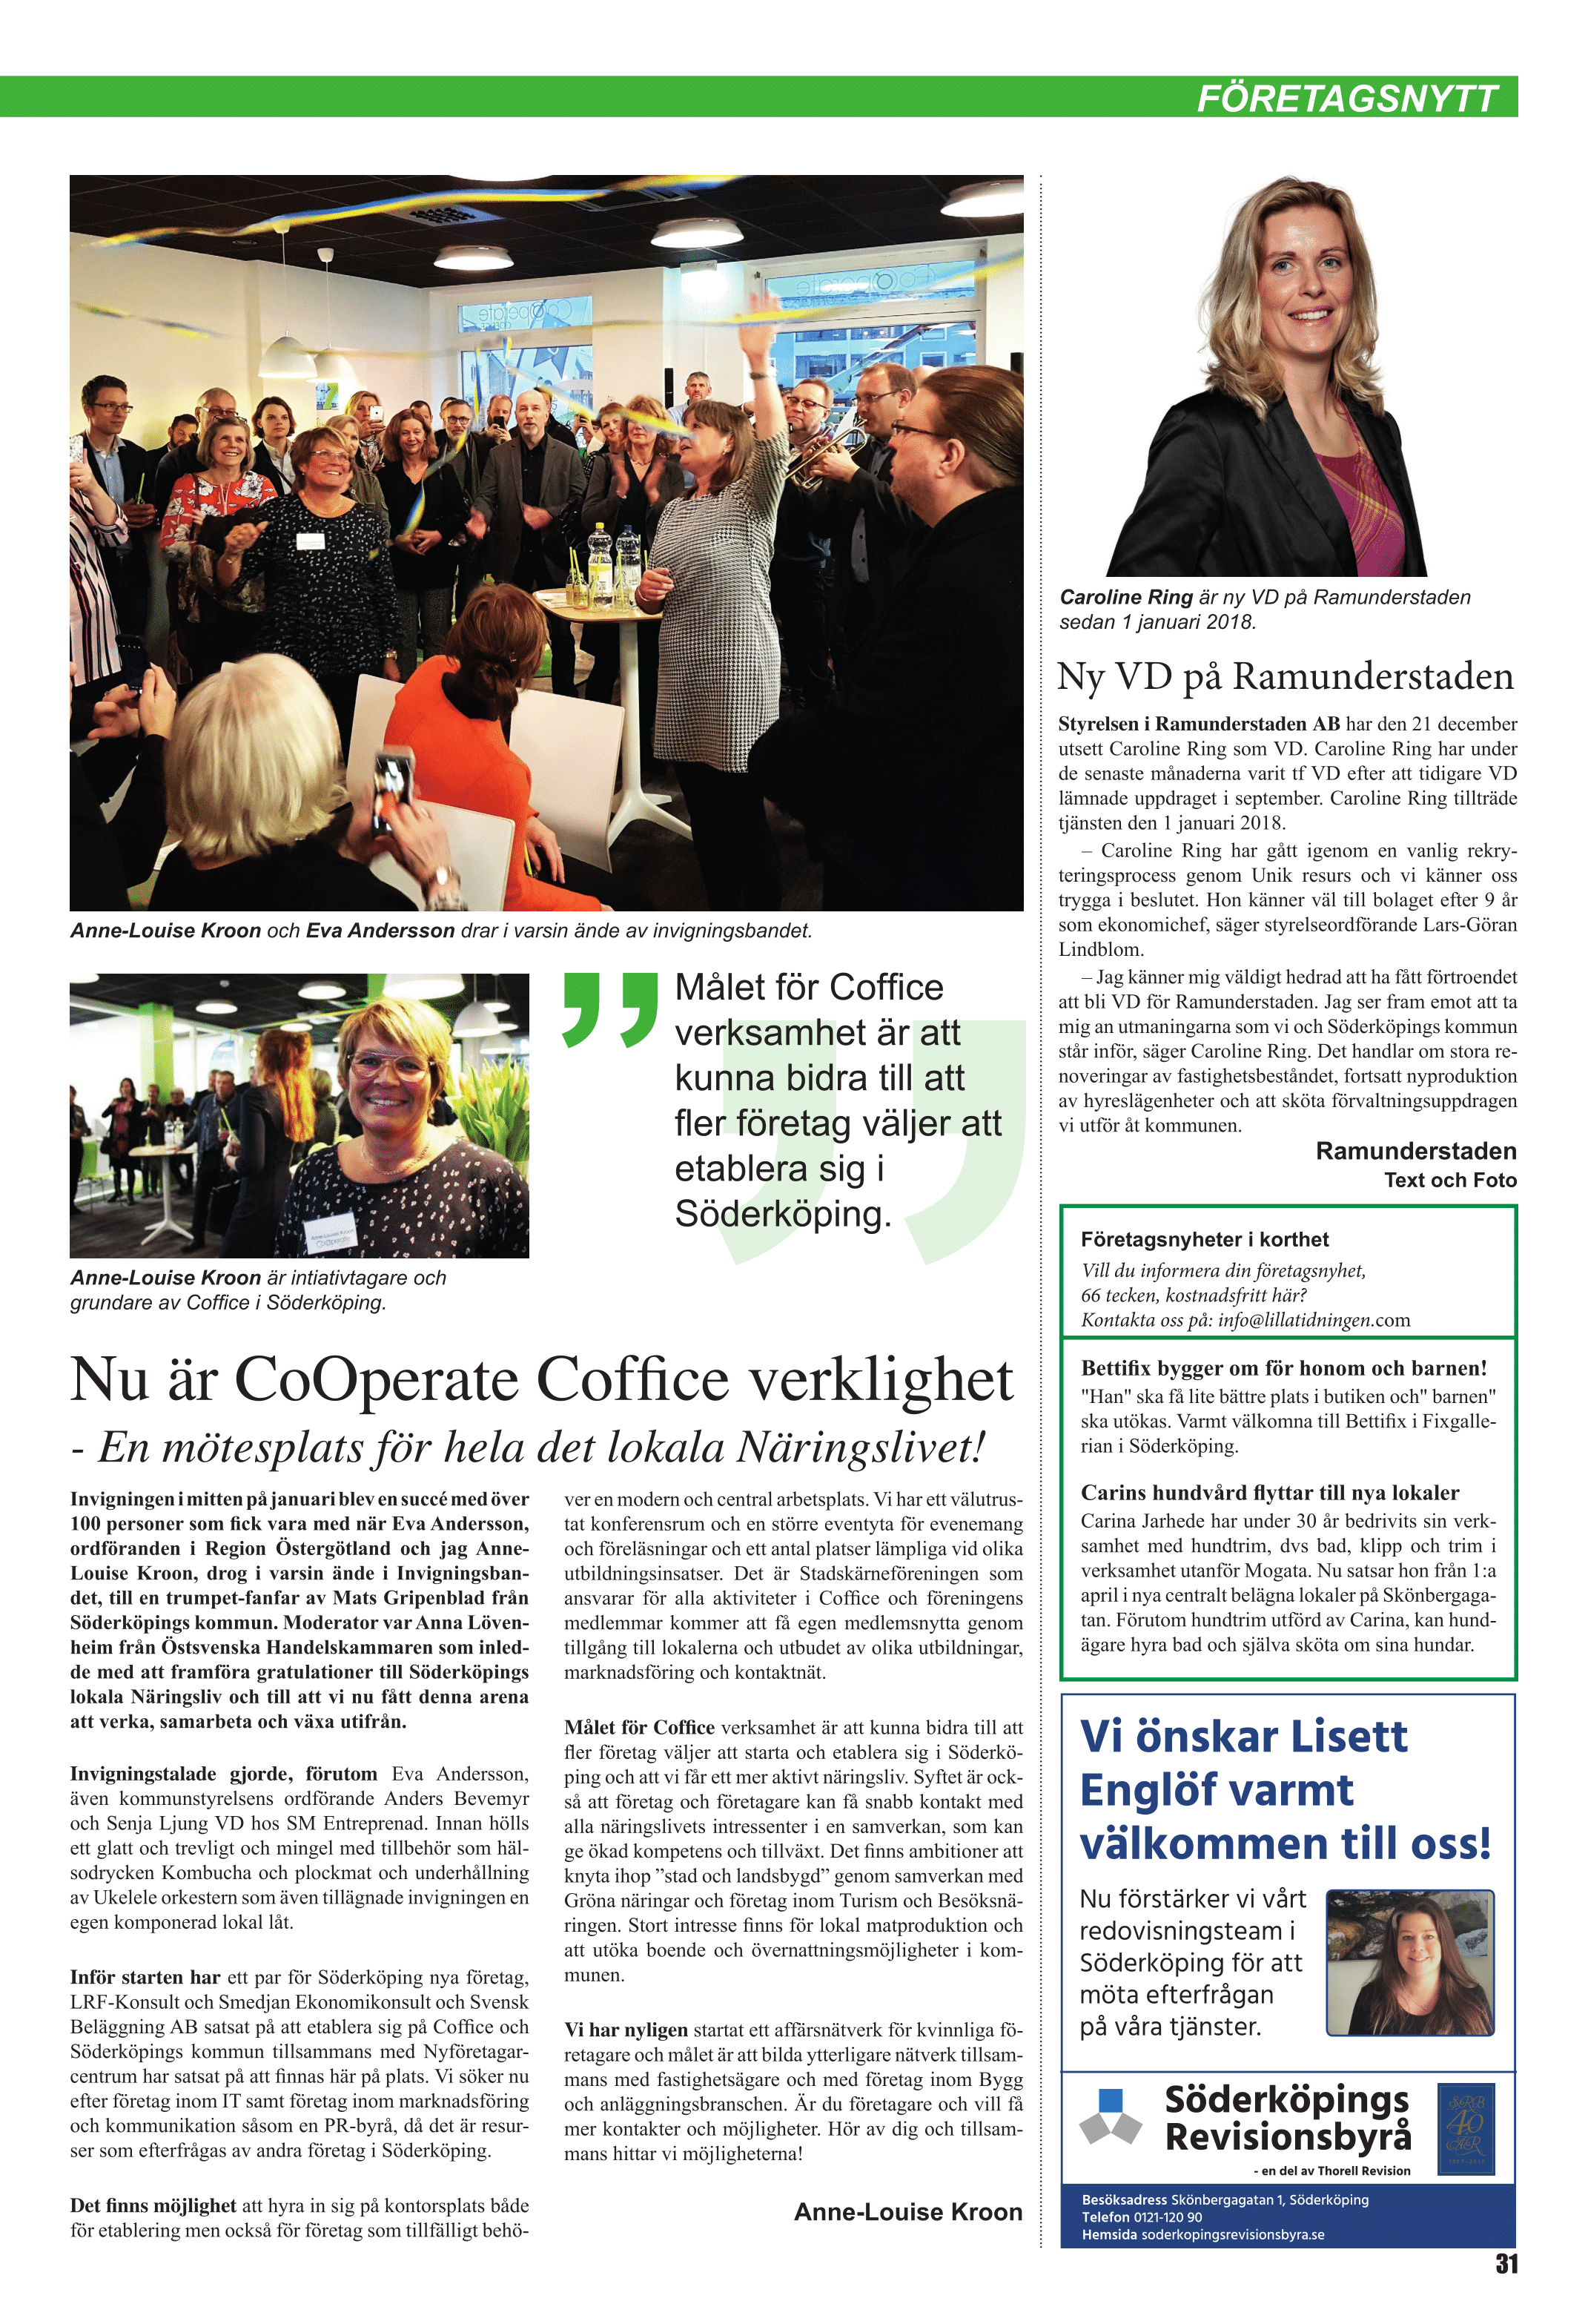 coffice-artikel-lilla-tidningen-jan-18-1